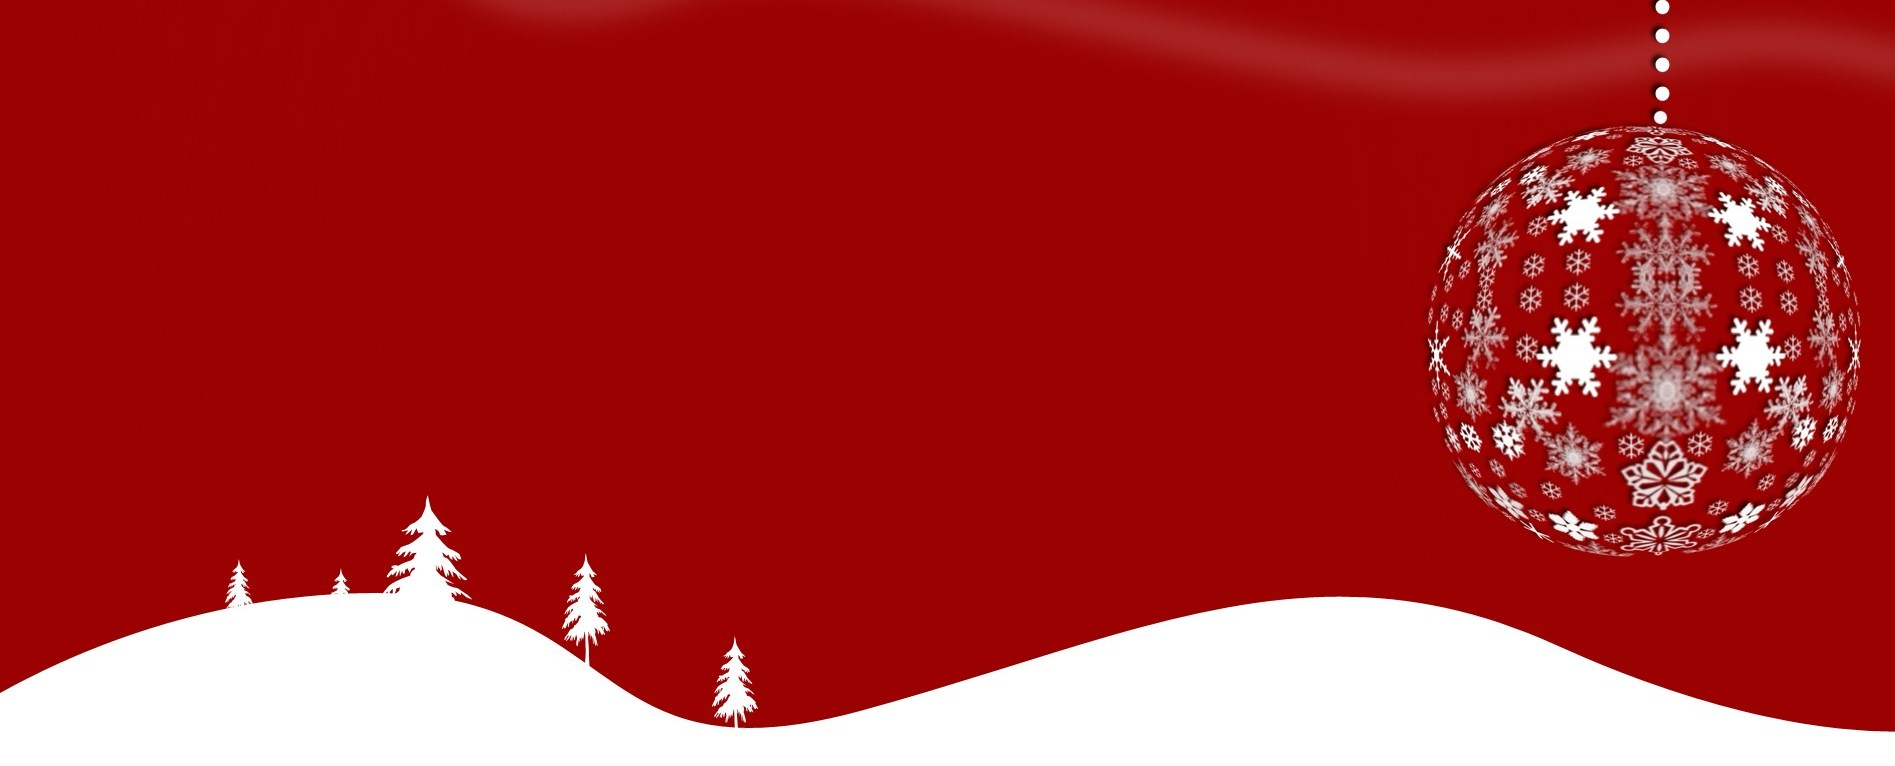 Free Fall Wallpaper For Phone Holiday Luncheon Department Of Statistics And Actuarial